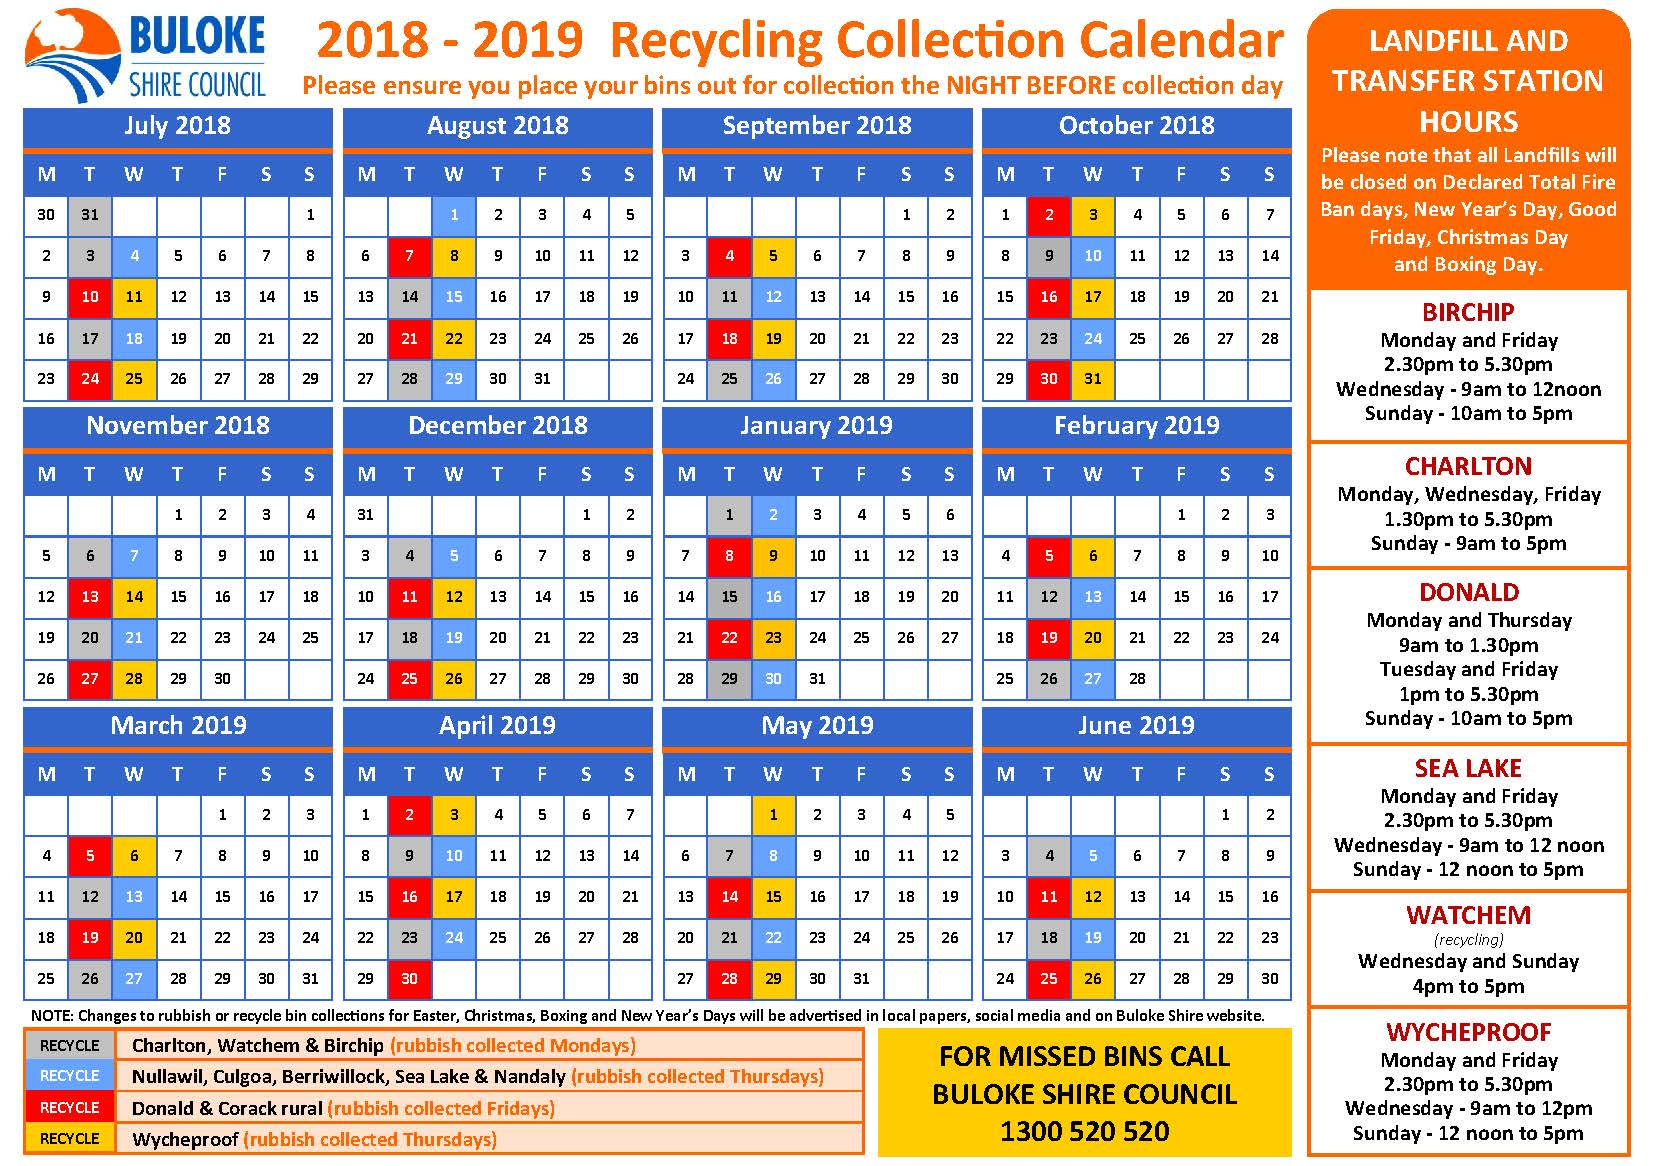 2018-2019 Recycling Collection Calender - FINAL